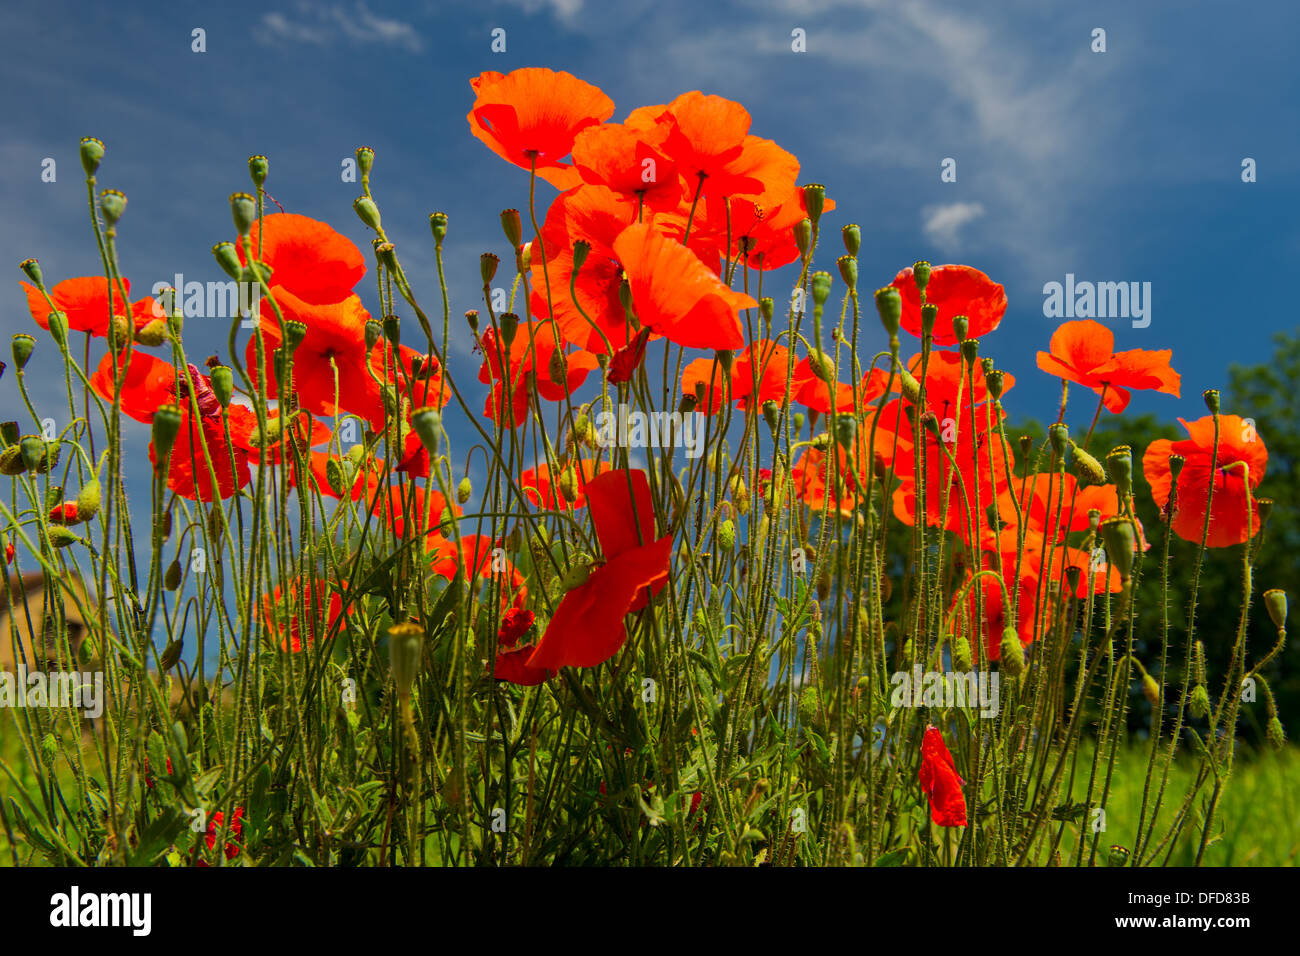 Red poppies with blue sky - Stock Image